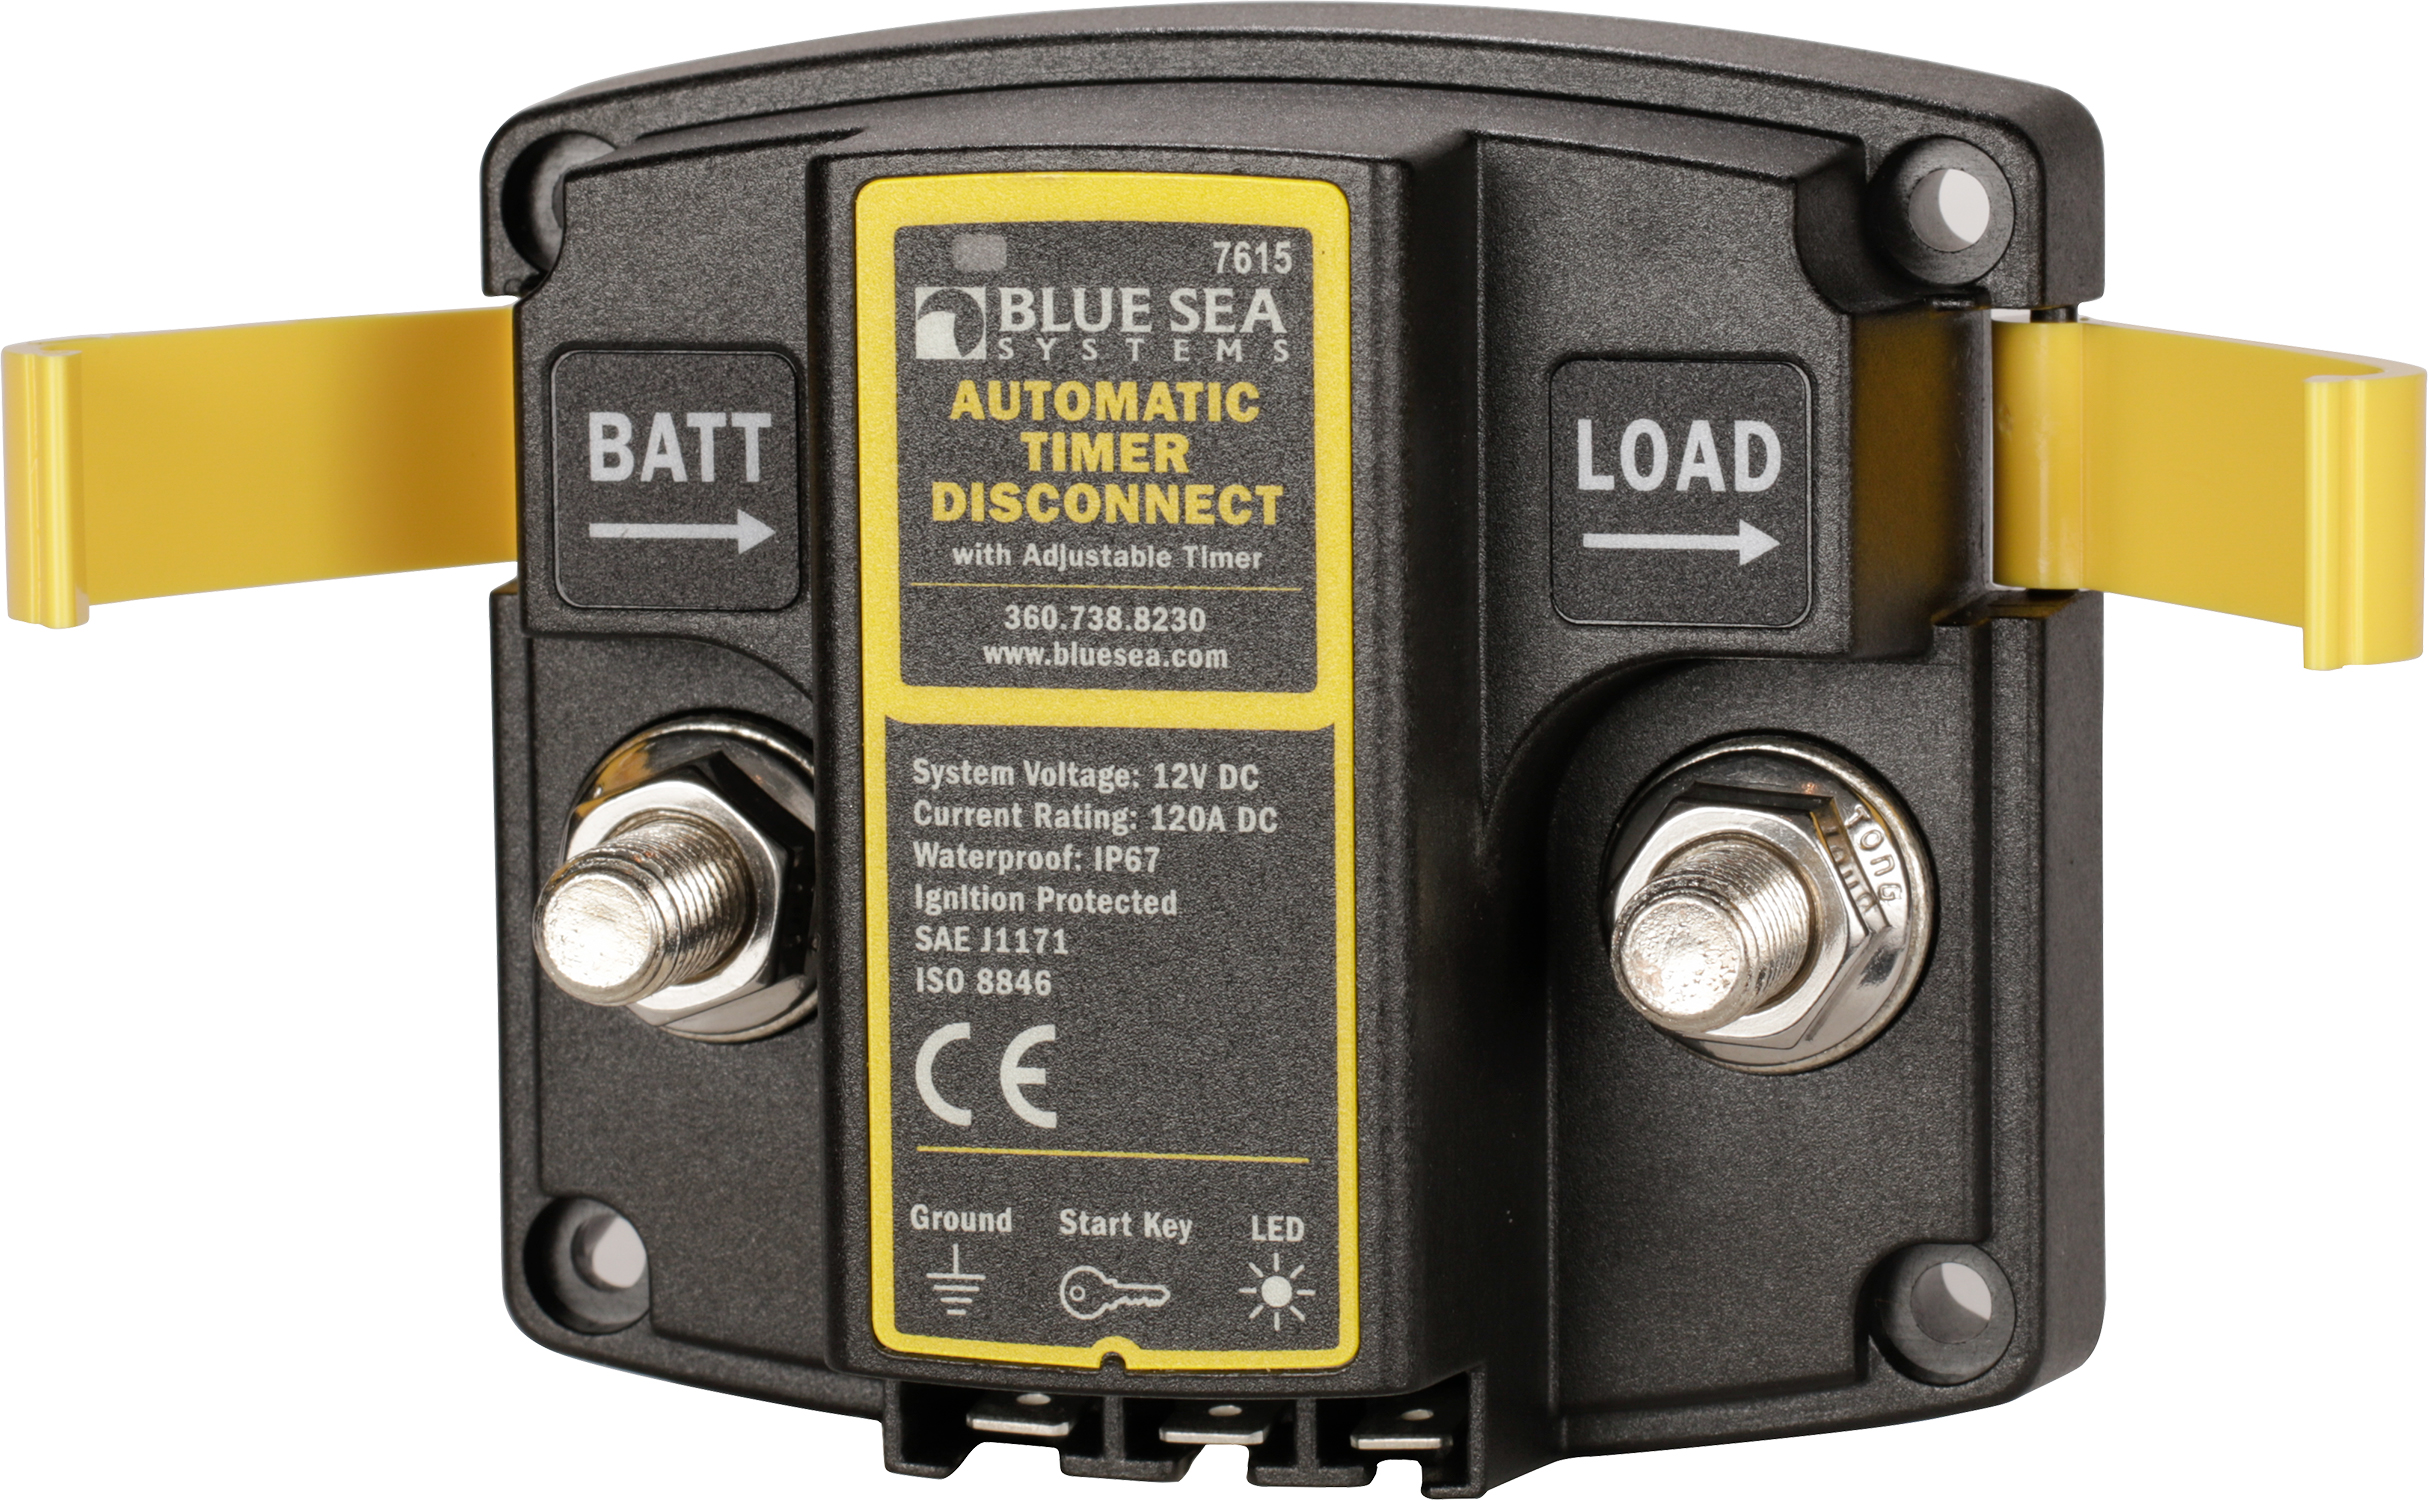 Atd Automatic Timer Disconnect Blue Sea Systems